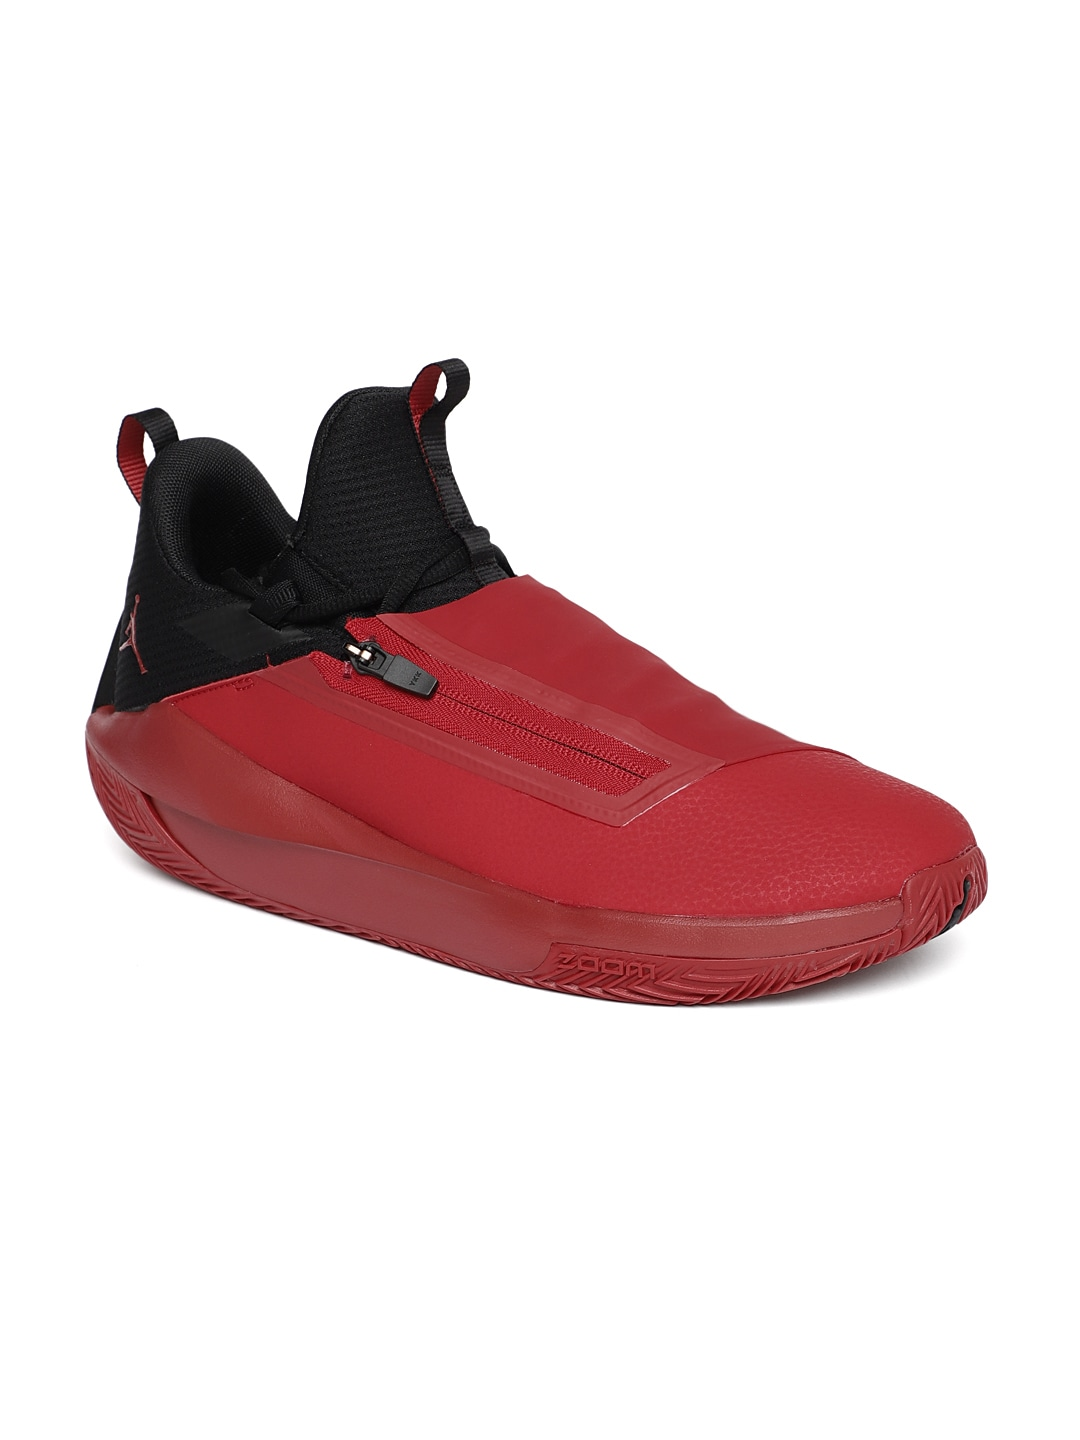 e69b780816d87 Jordan Shoes - Buy Jordan Shoes For Men Online in India